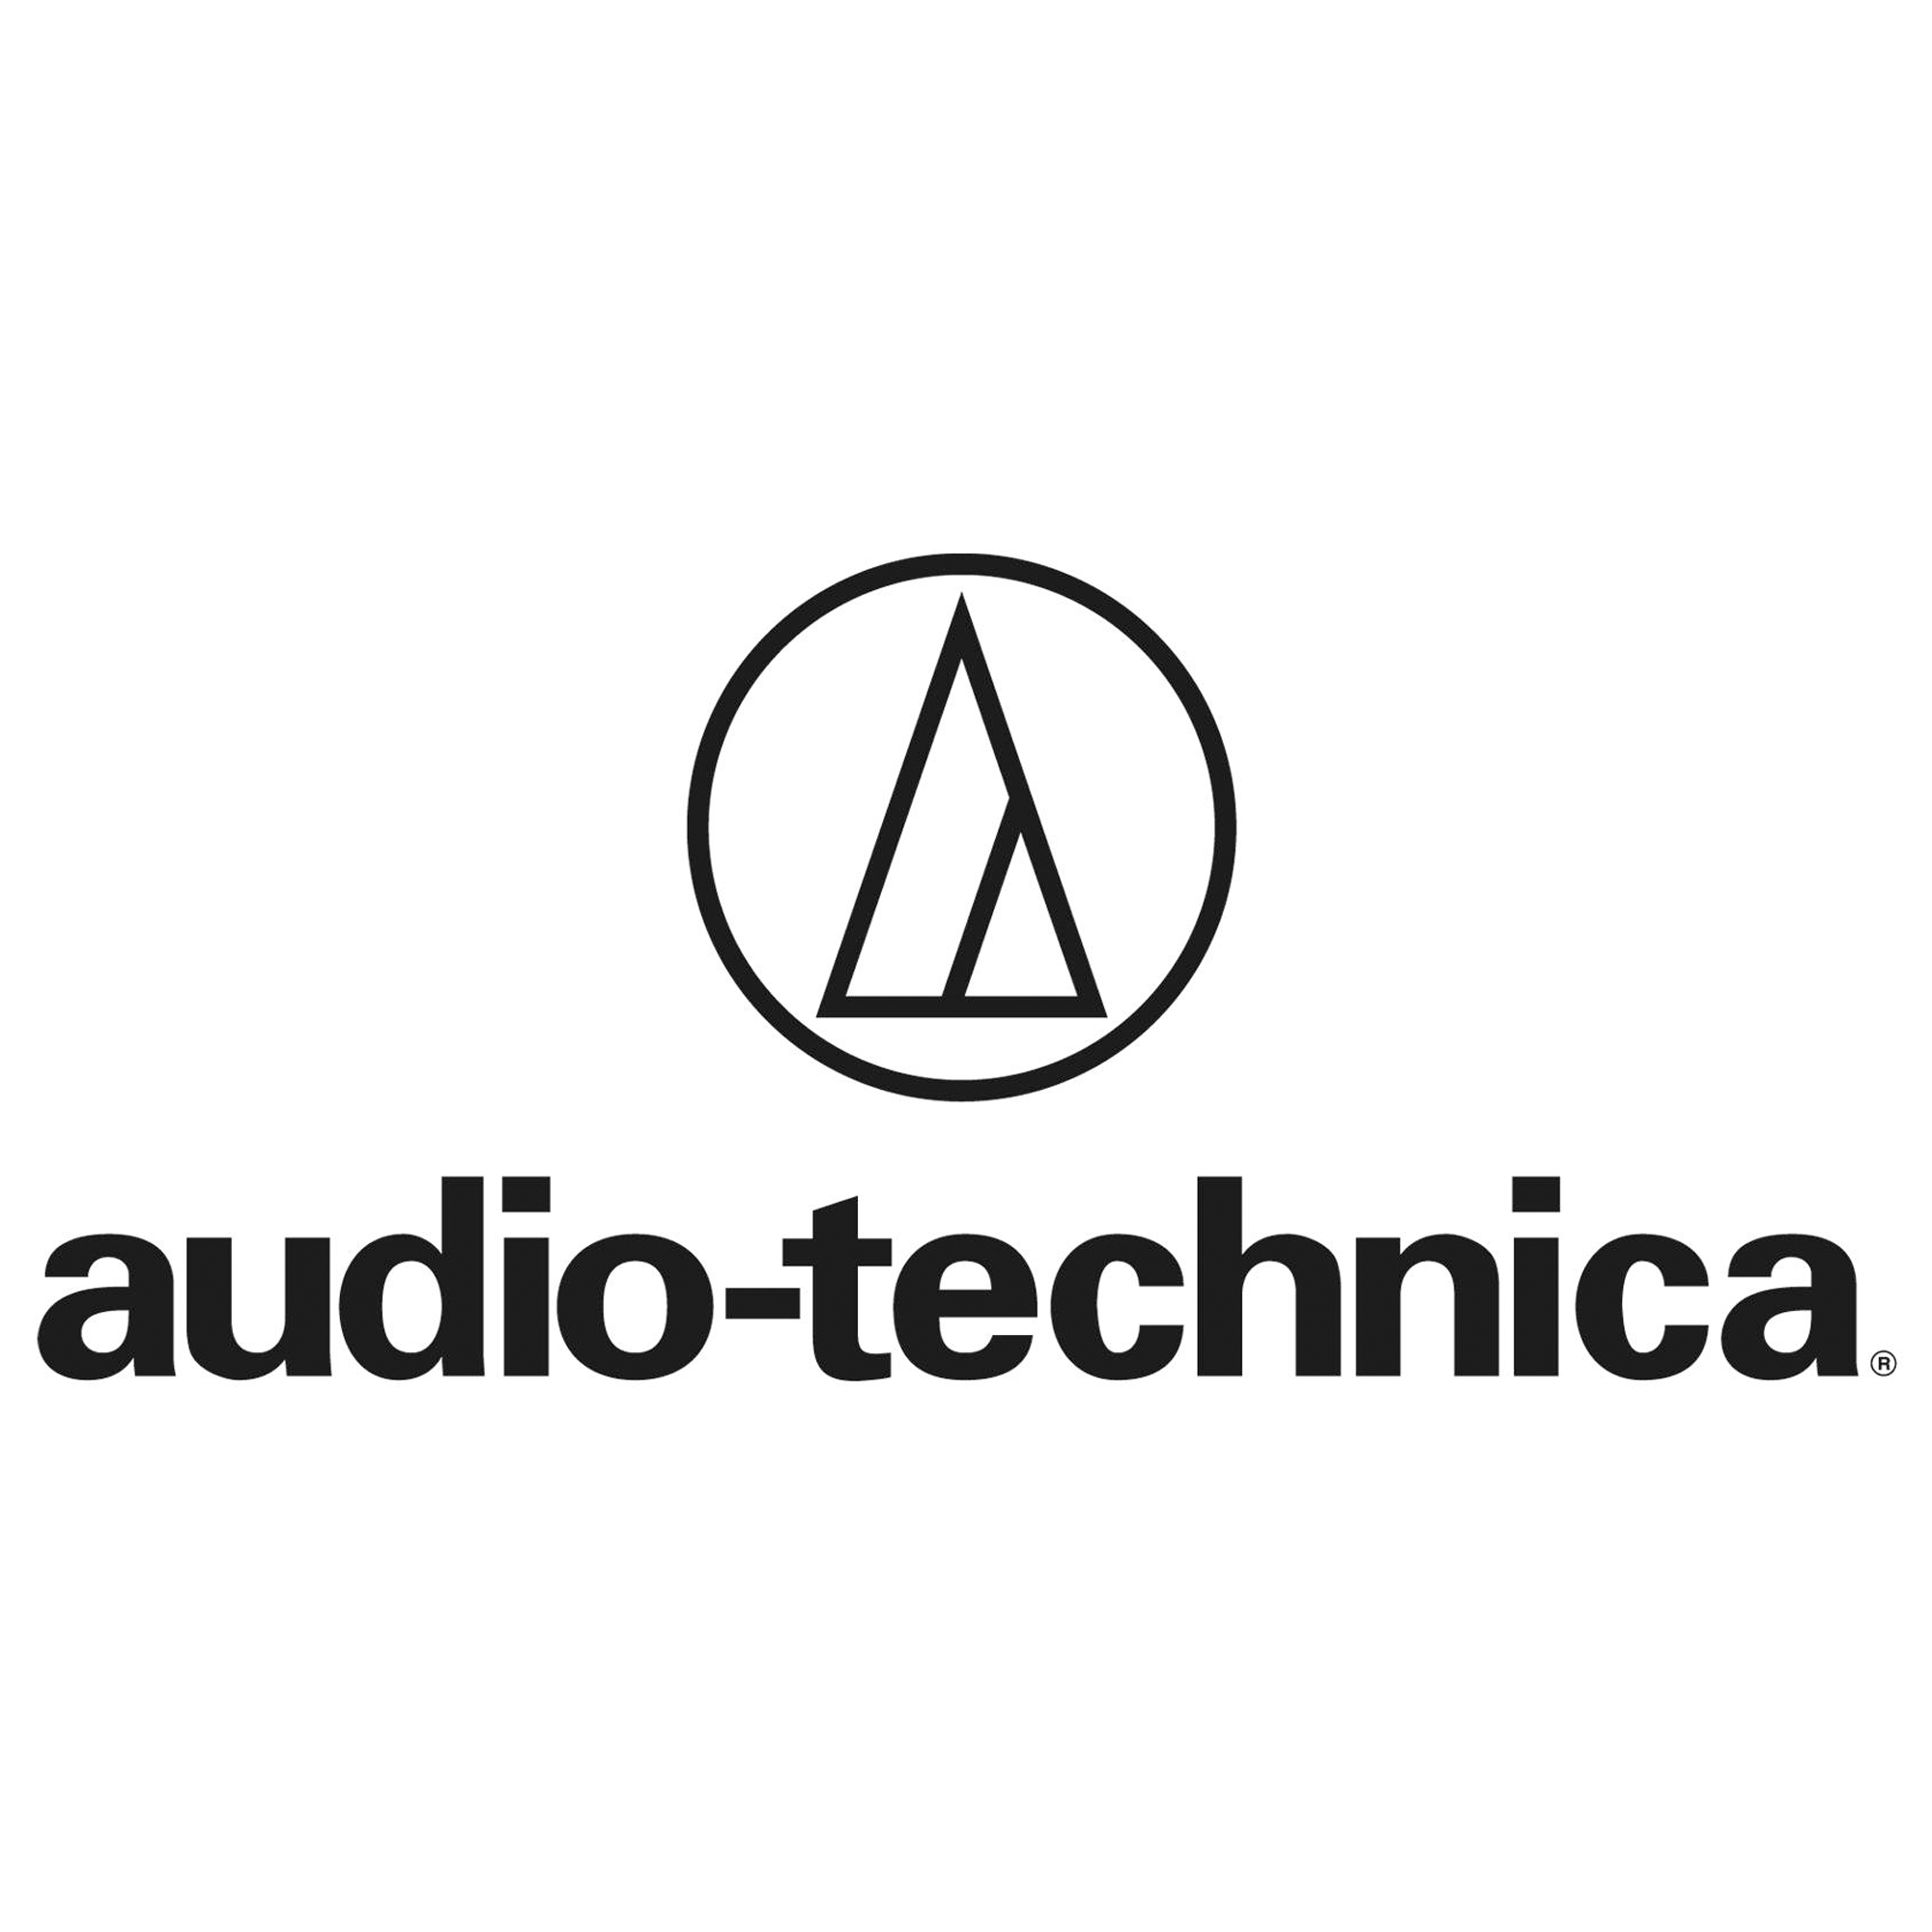 Audio-Technica AC25 Antenna Cable